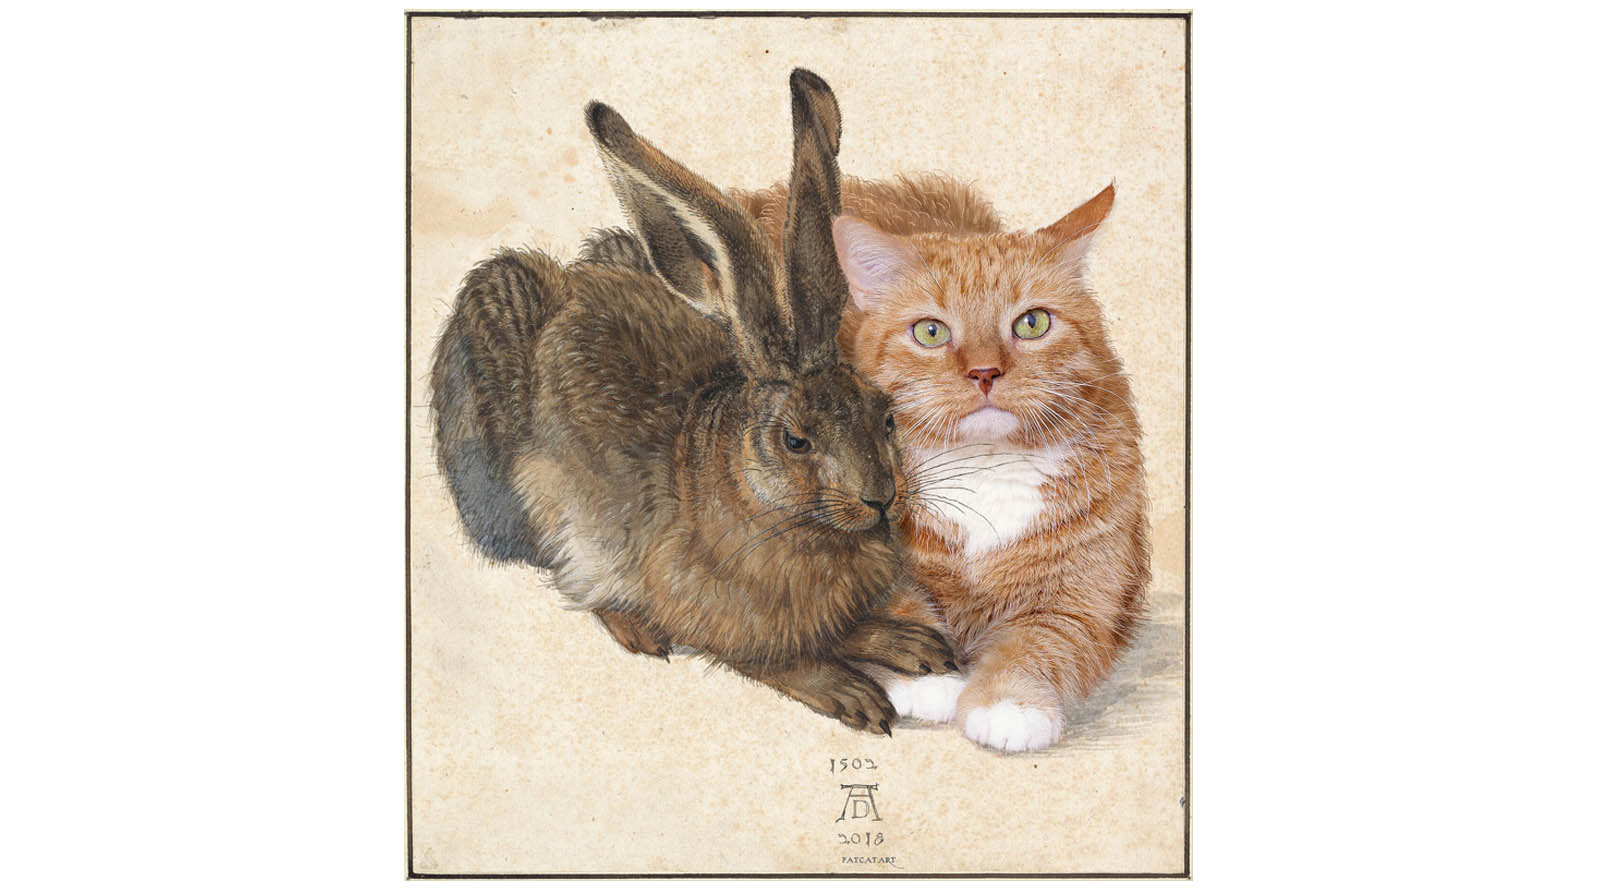 Albrecht Dürer. Hare and Cat